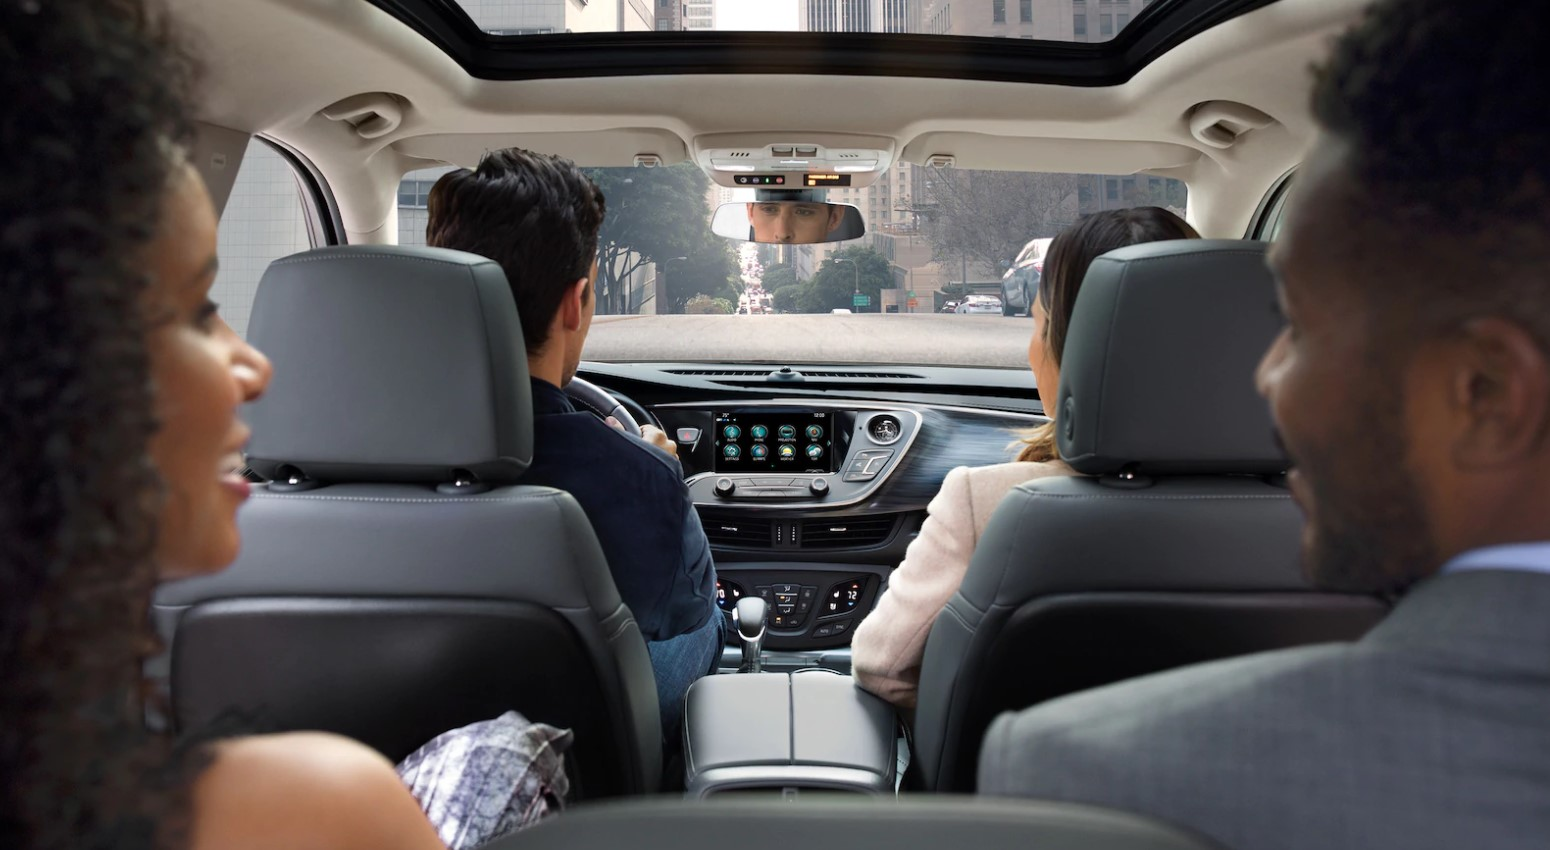 2019 Buick Envision Interior Seating and Dashboard Picture